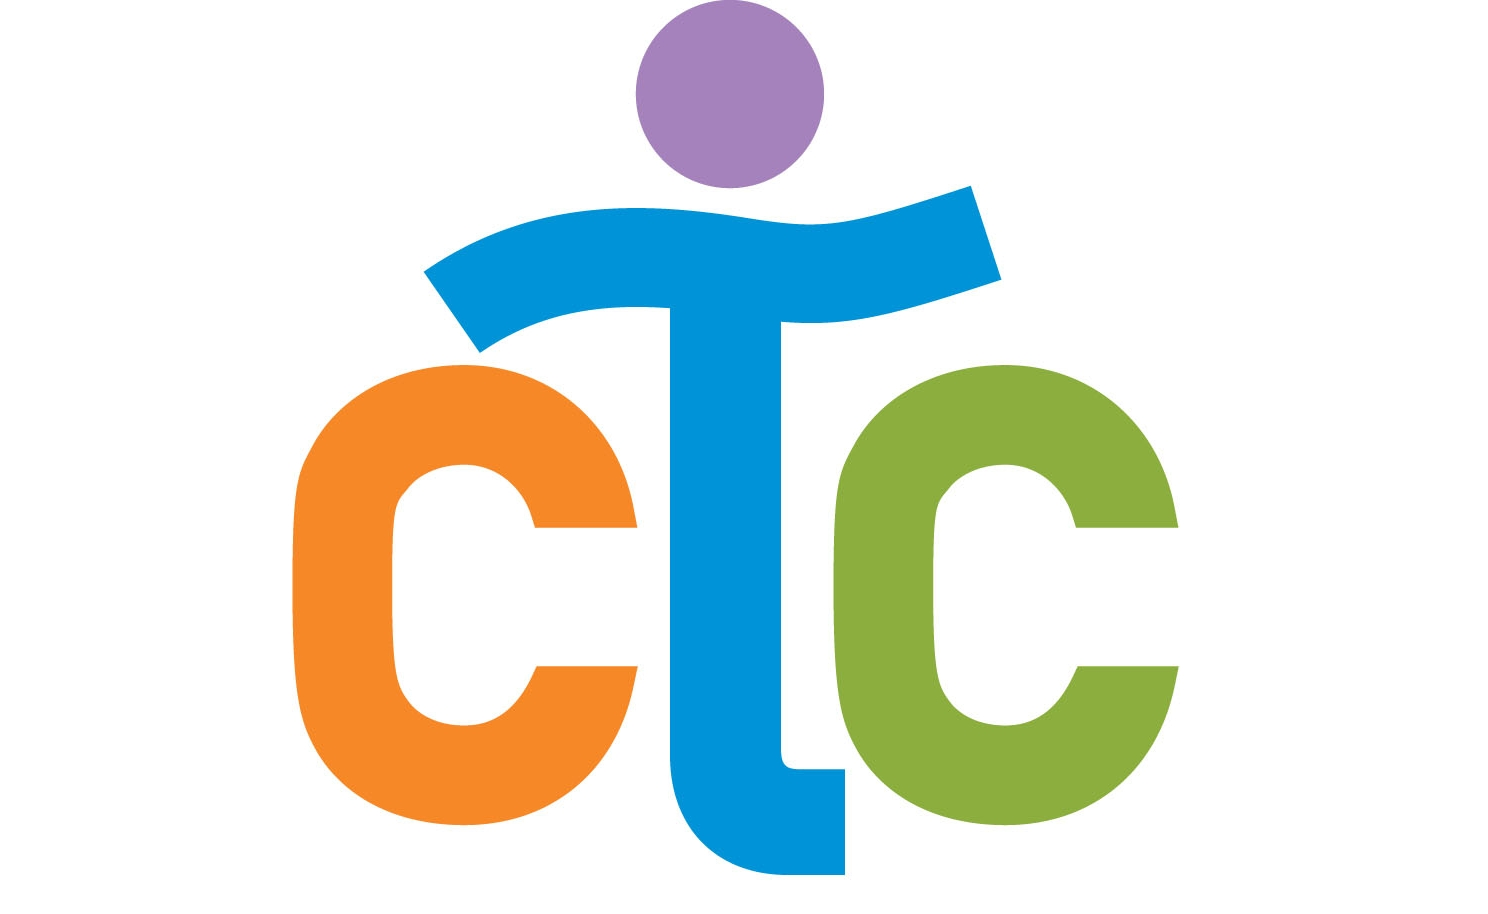 Comprehensive Therapy Center: Helping people walk and talk   Comprehensive Therapy Center's mission is to meet the therapeutic and educational needs of people with disabilities through skill building, academic enhancement and social emotional support.